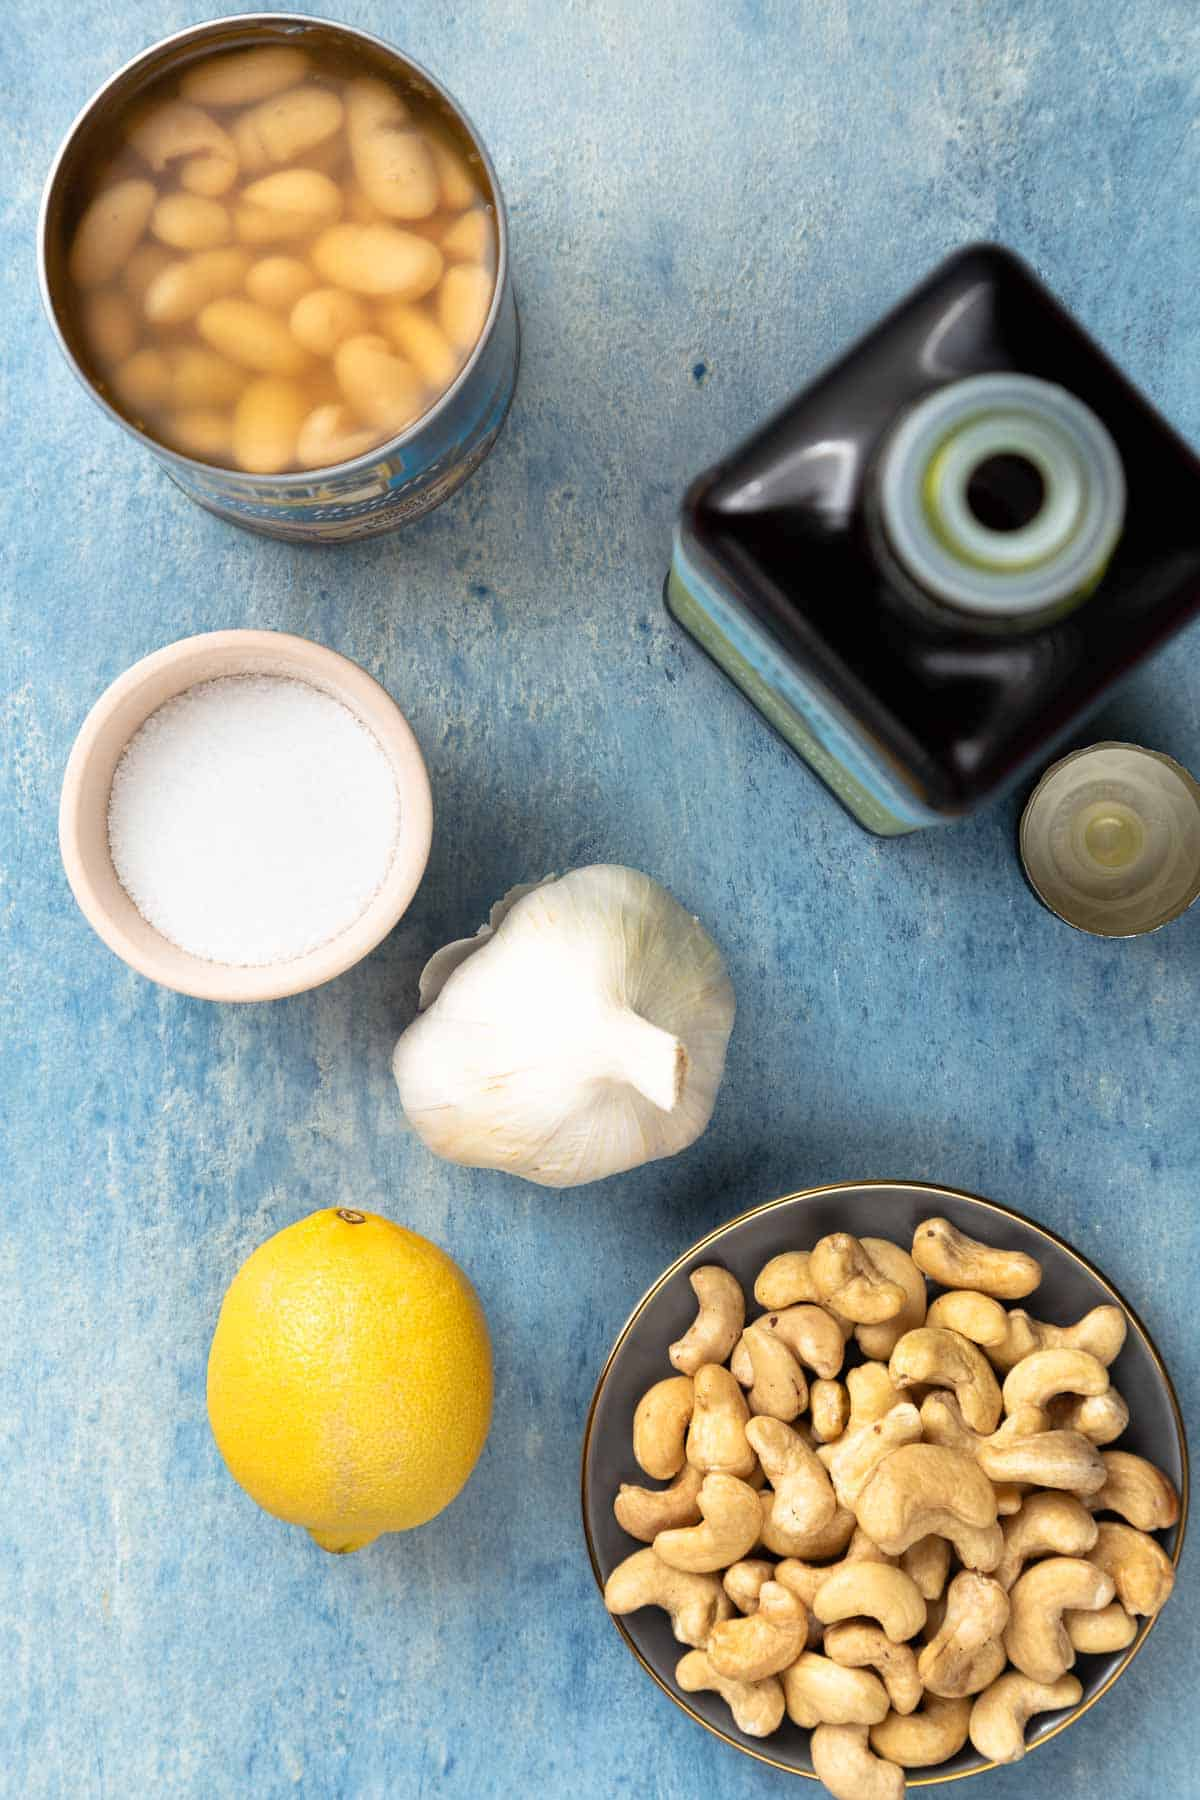 White beans in a can next to salt, oil, a bulb of garlic, lemon, and a bowl of cashews